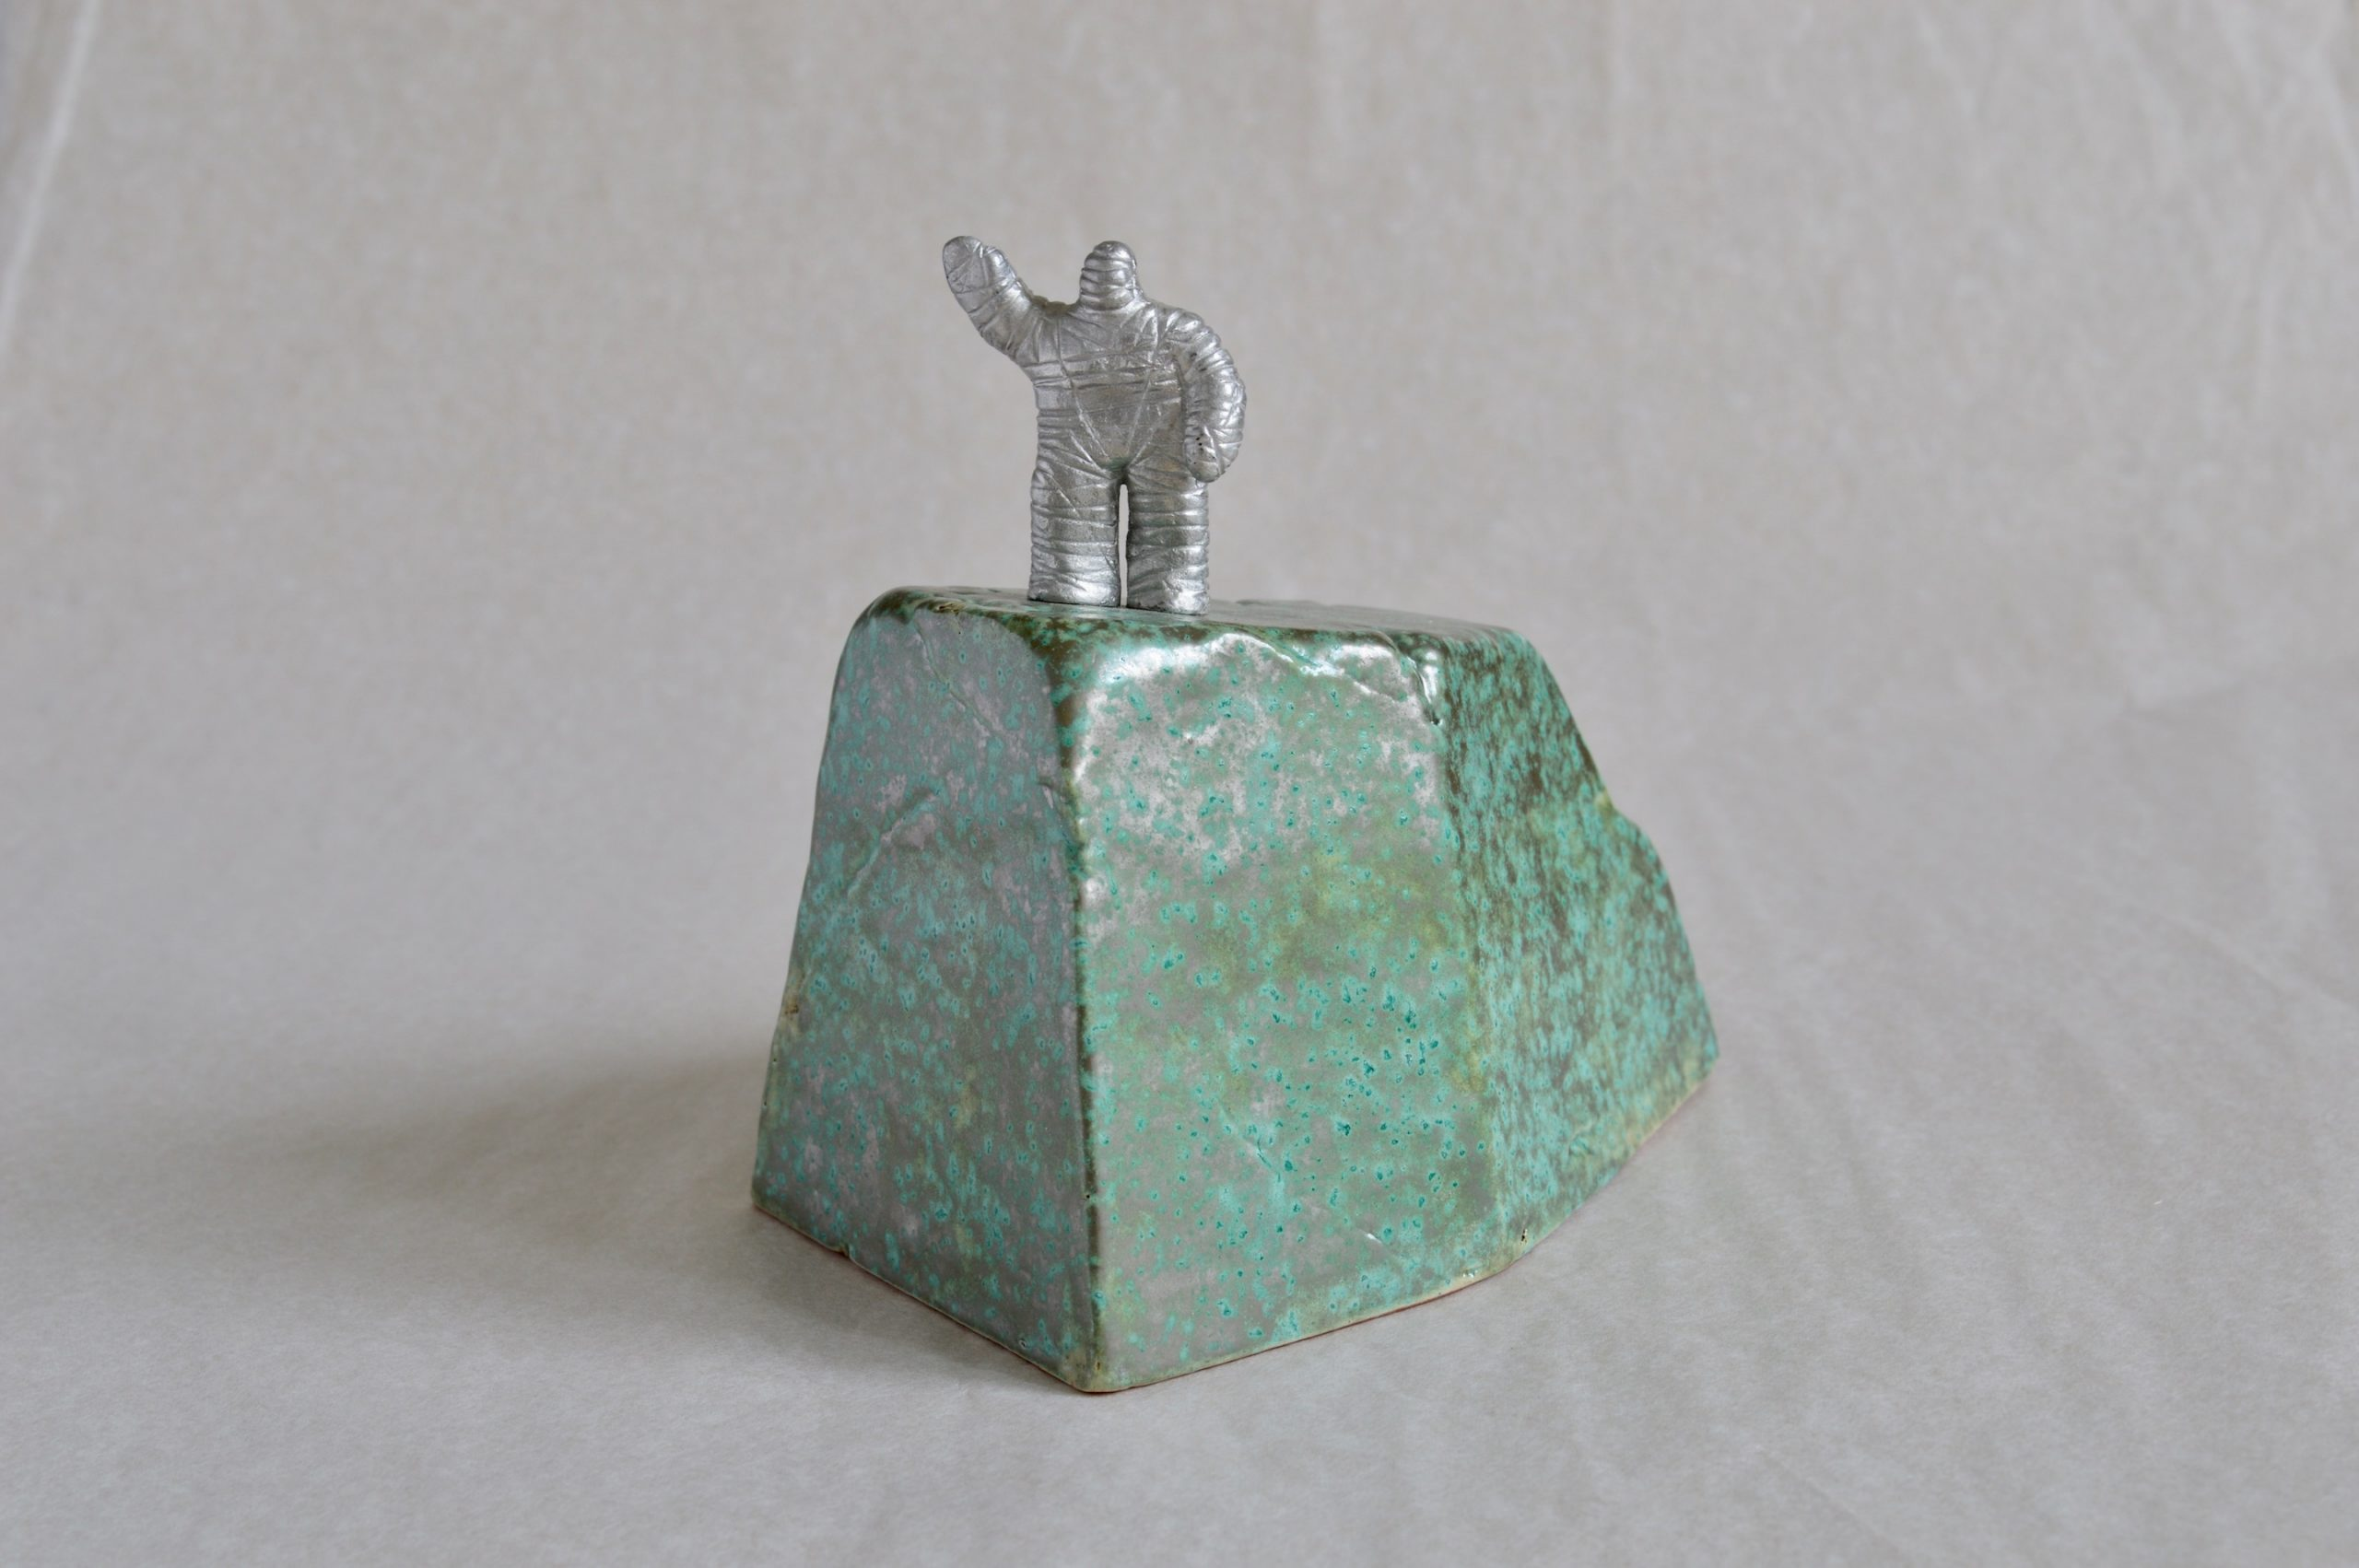 New Wave, limited edition of five, verdigris version, Max height 12.3cm overall (inc. base).